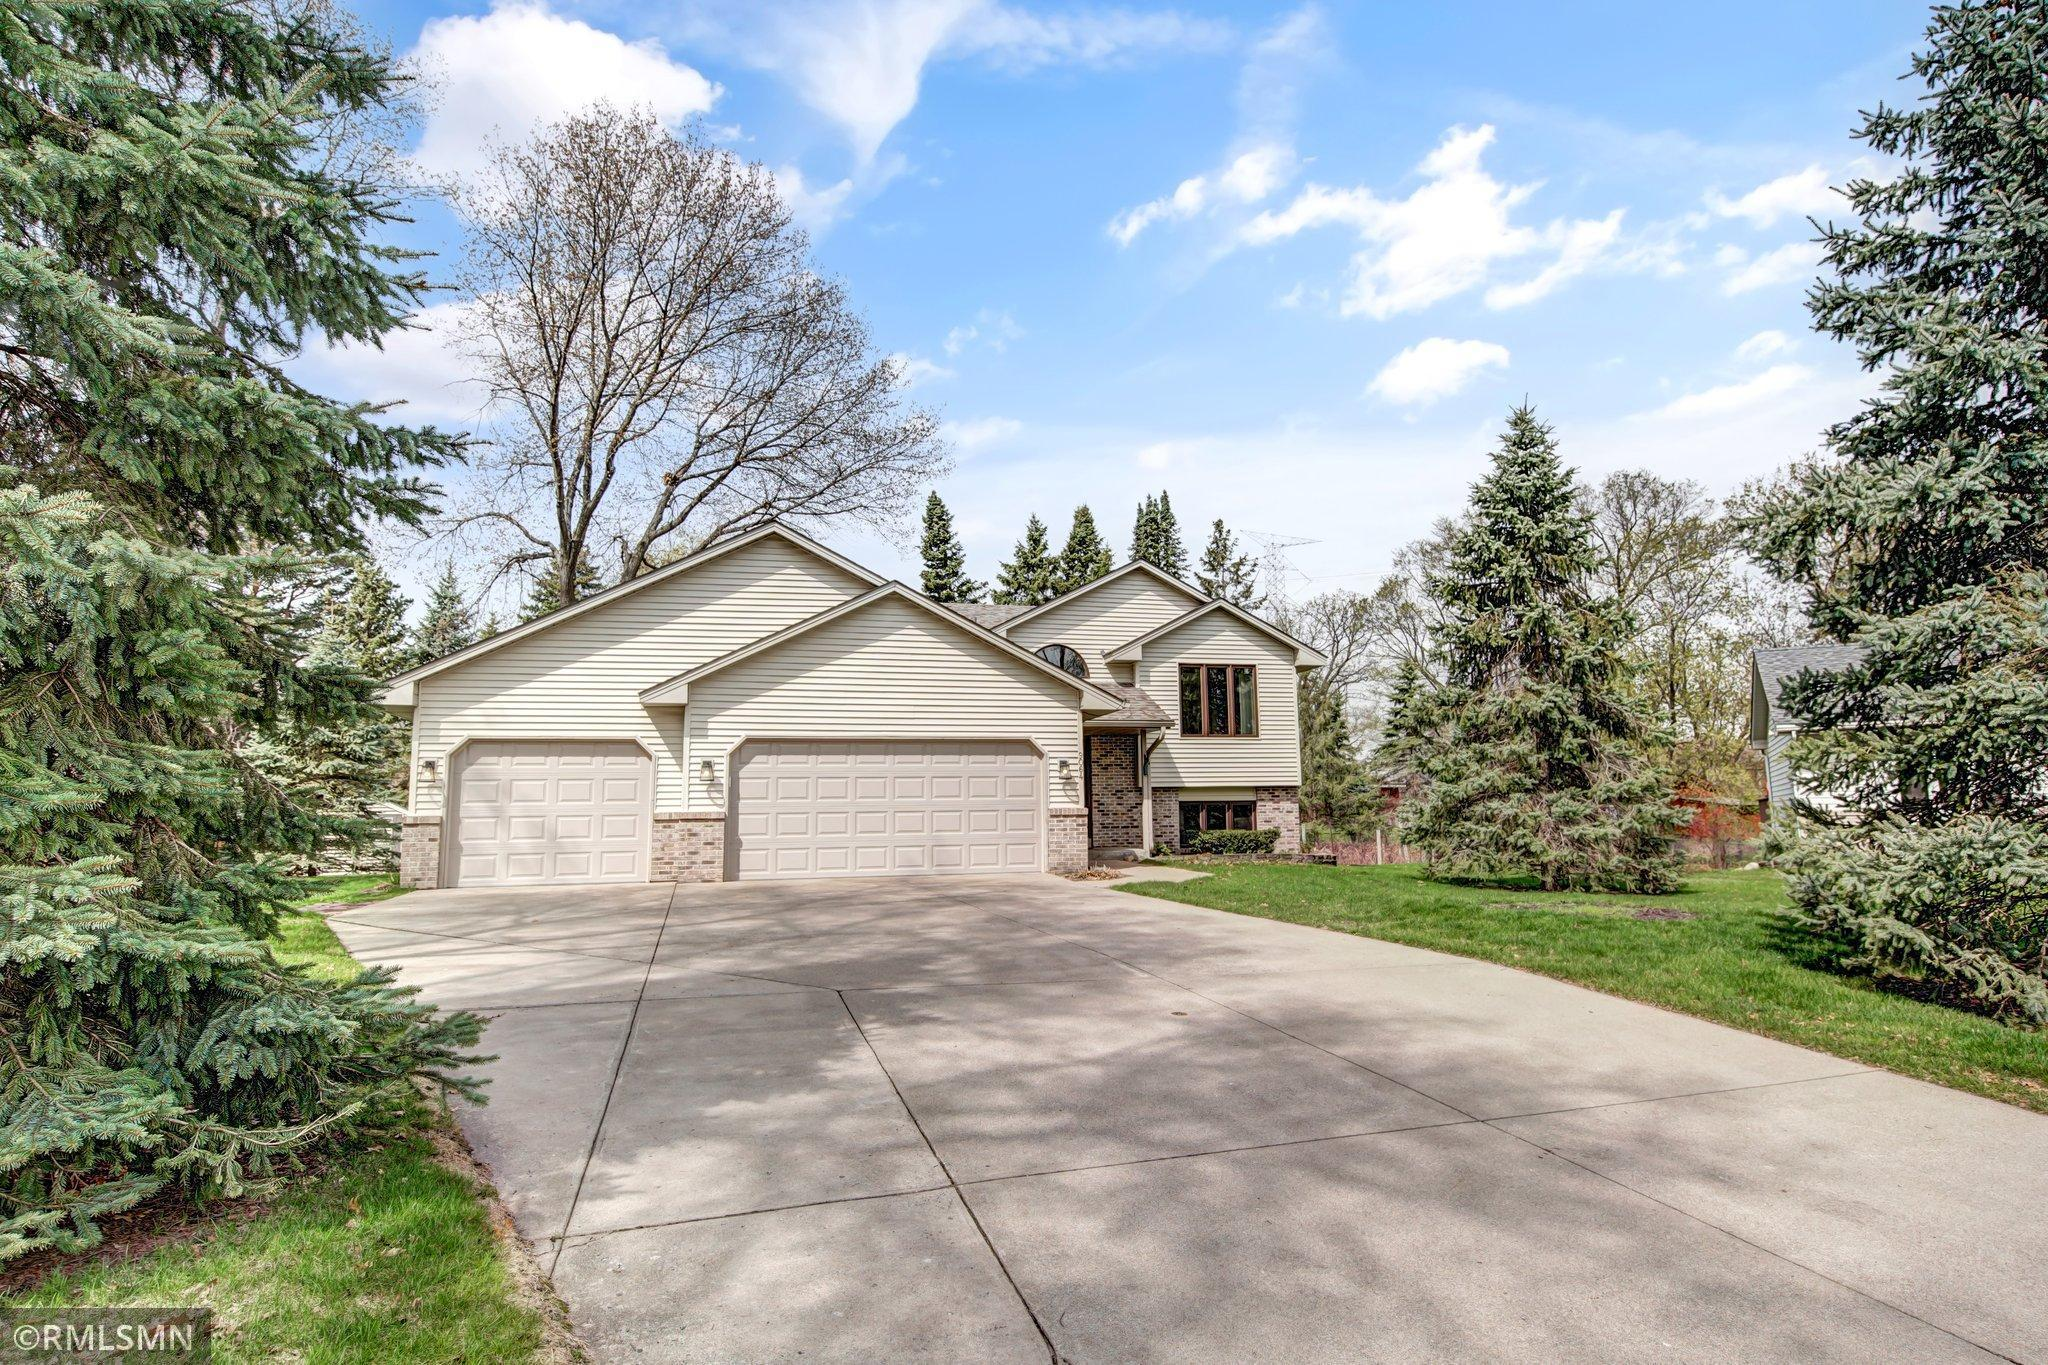 9064 Norway Street Nw, Coon Rapids MN 55433 - Photo 2